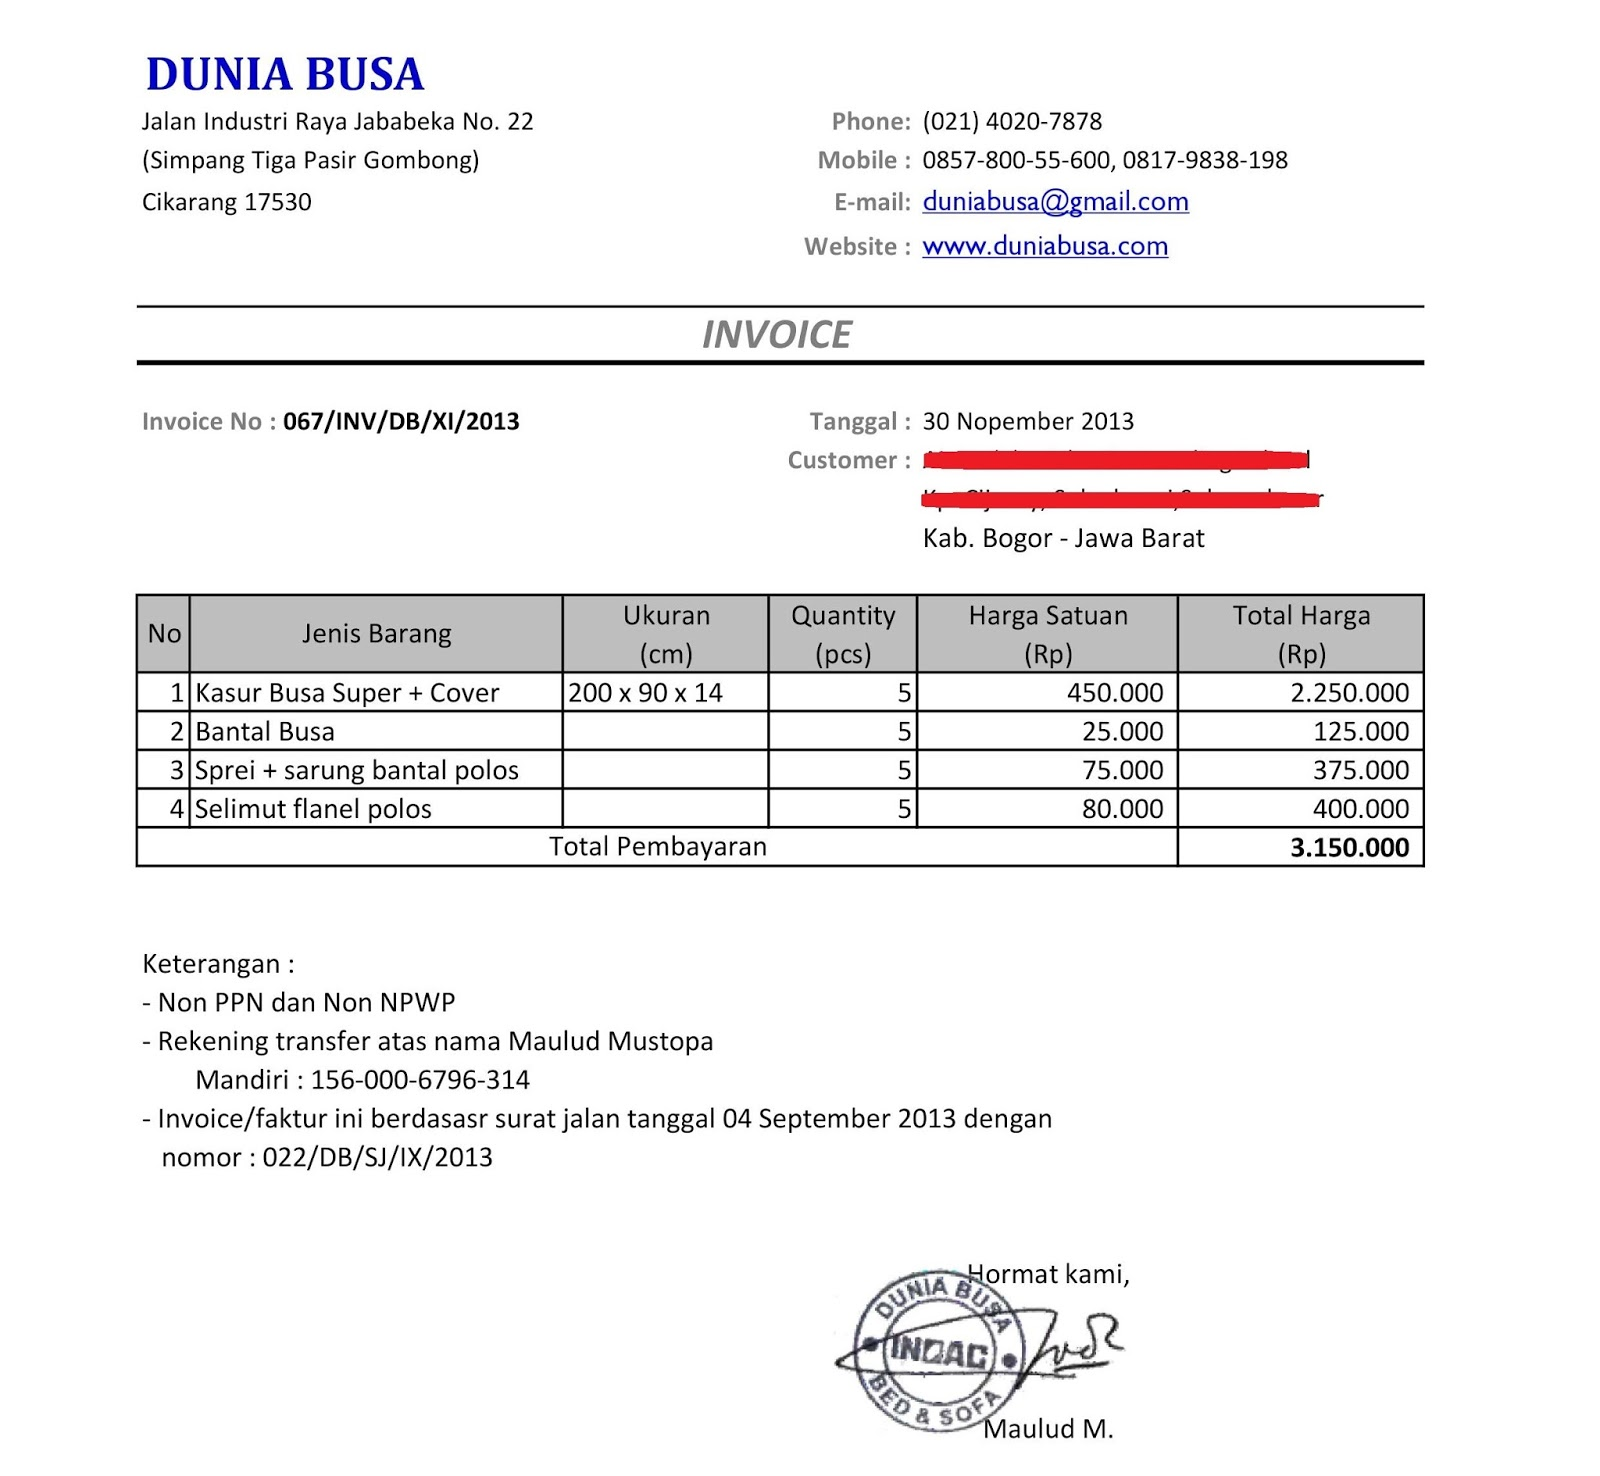 Garygrubbsus  Unique Free Invoice Online  Create Invoice Online  Invoice Template  With Goodlooking Contoh Format Invoice Atau Surat Tagihan  Brankas Arsip  Free Invoice Online With Lovely What Is Credit Invoice Also Sample Personal Invoice In Addition Online Invoice Templates Free And Vat On Proforma Invoices As Well As Construction Invoices Additionally How To Make Invoices From Sklepco With Garygrubbsus  Goodlooking Free Invoice Online  Create Invoice Online  Invoice Template  With Lovely Contoh Format Invoice Atau Surat Tagihan  Brankas Arsip  Free Invoice Online And Unique What Is Credit Invoice Also Sample Personal Invoice In Addition Online Invoice Templates Free From Sklepco